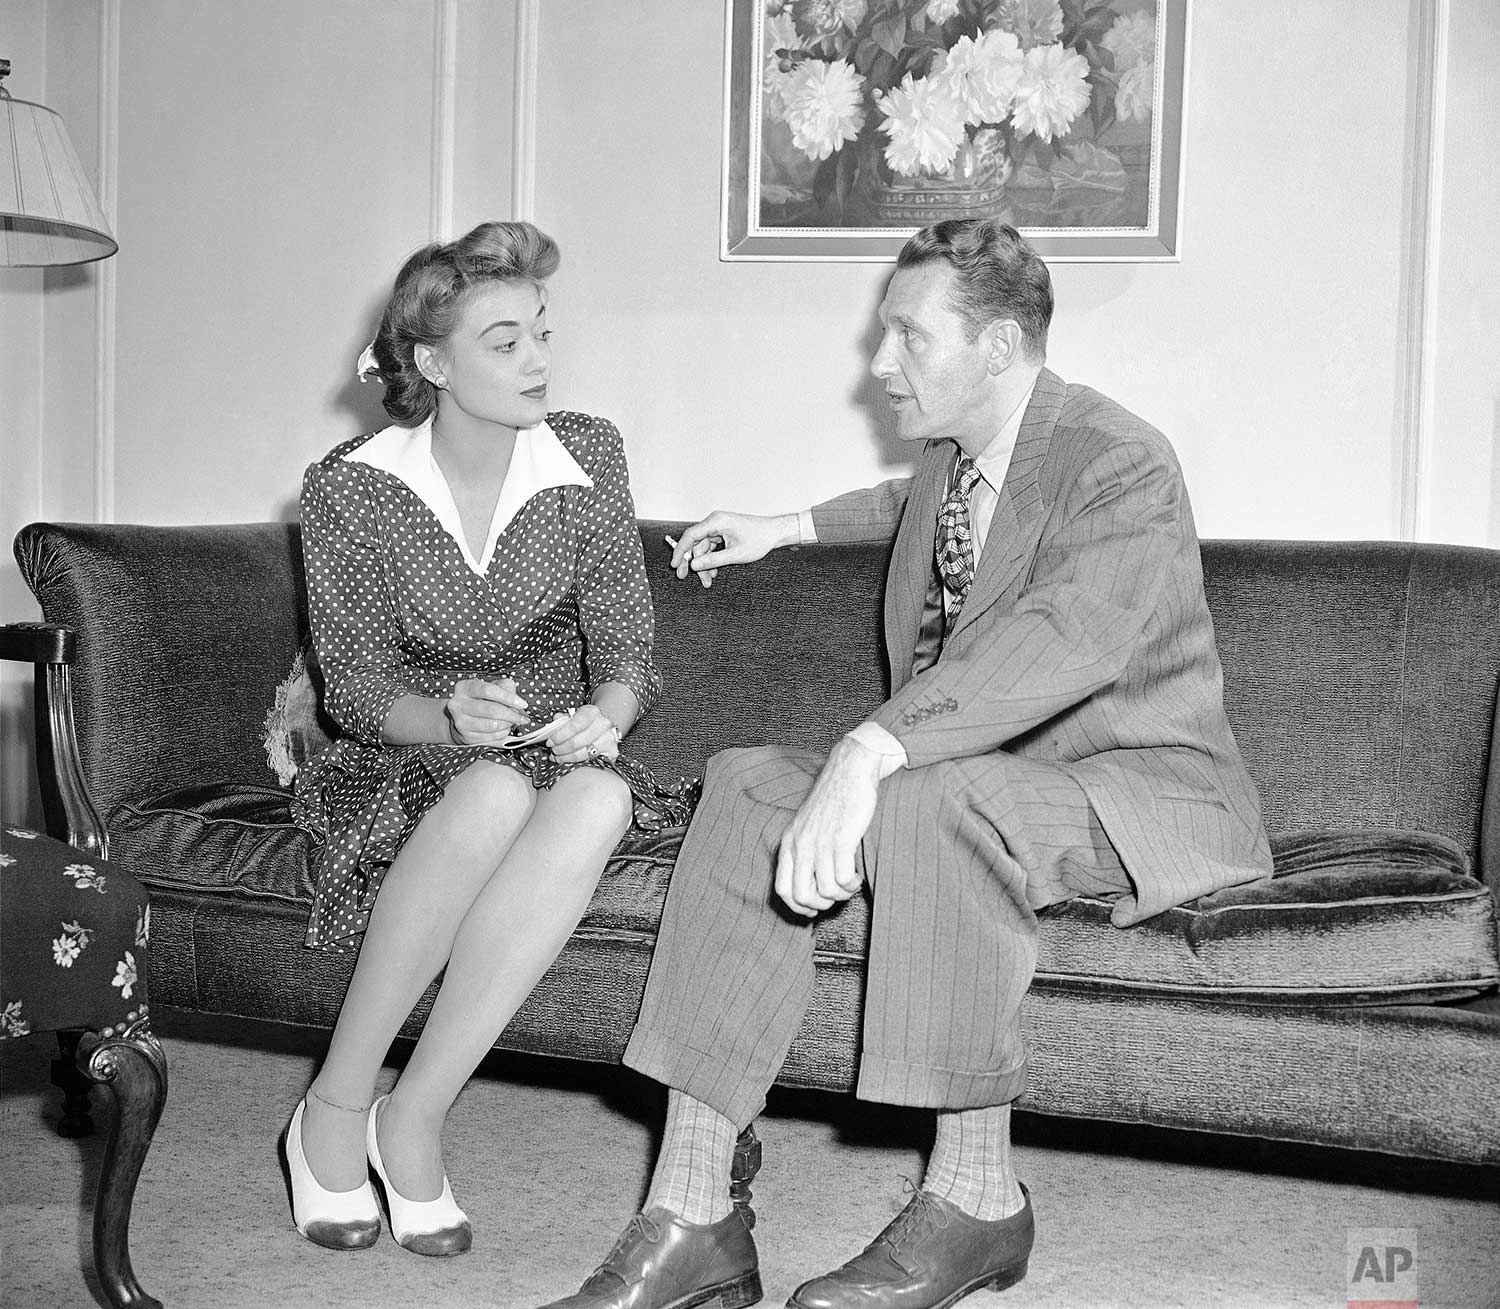 """Actor Ralph Bellamy has appeared in 83 movies, but he's deserted Hollywood temporarily to play a smash role in a current Broadway hit, """"Tomorrow, The World."""" Miss Frances Long, Associated Press reporter, interviews Mr. Bellamy in his New York apartment, July 23, 1943. (AP Photo/Charles Kenneth Lucas)"""